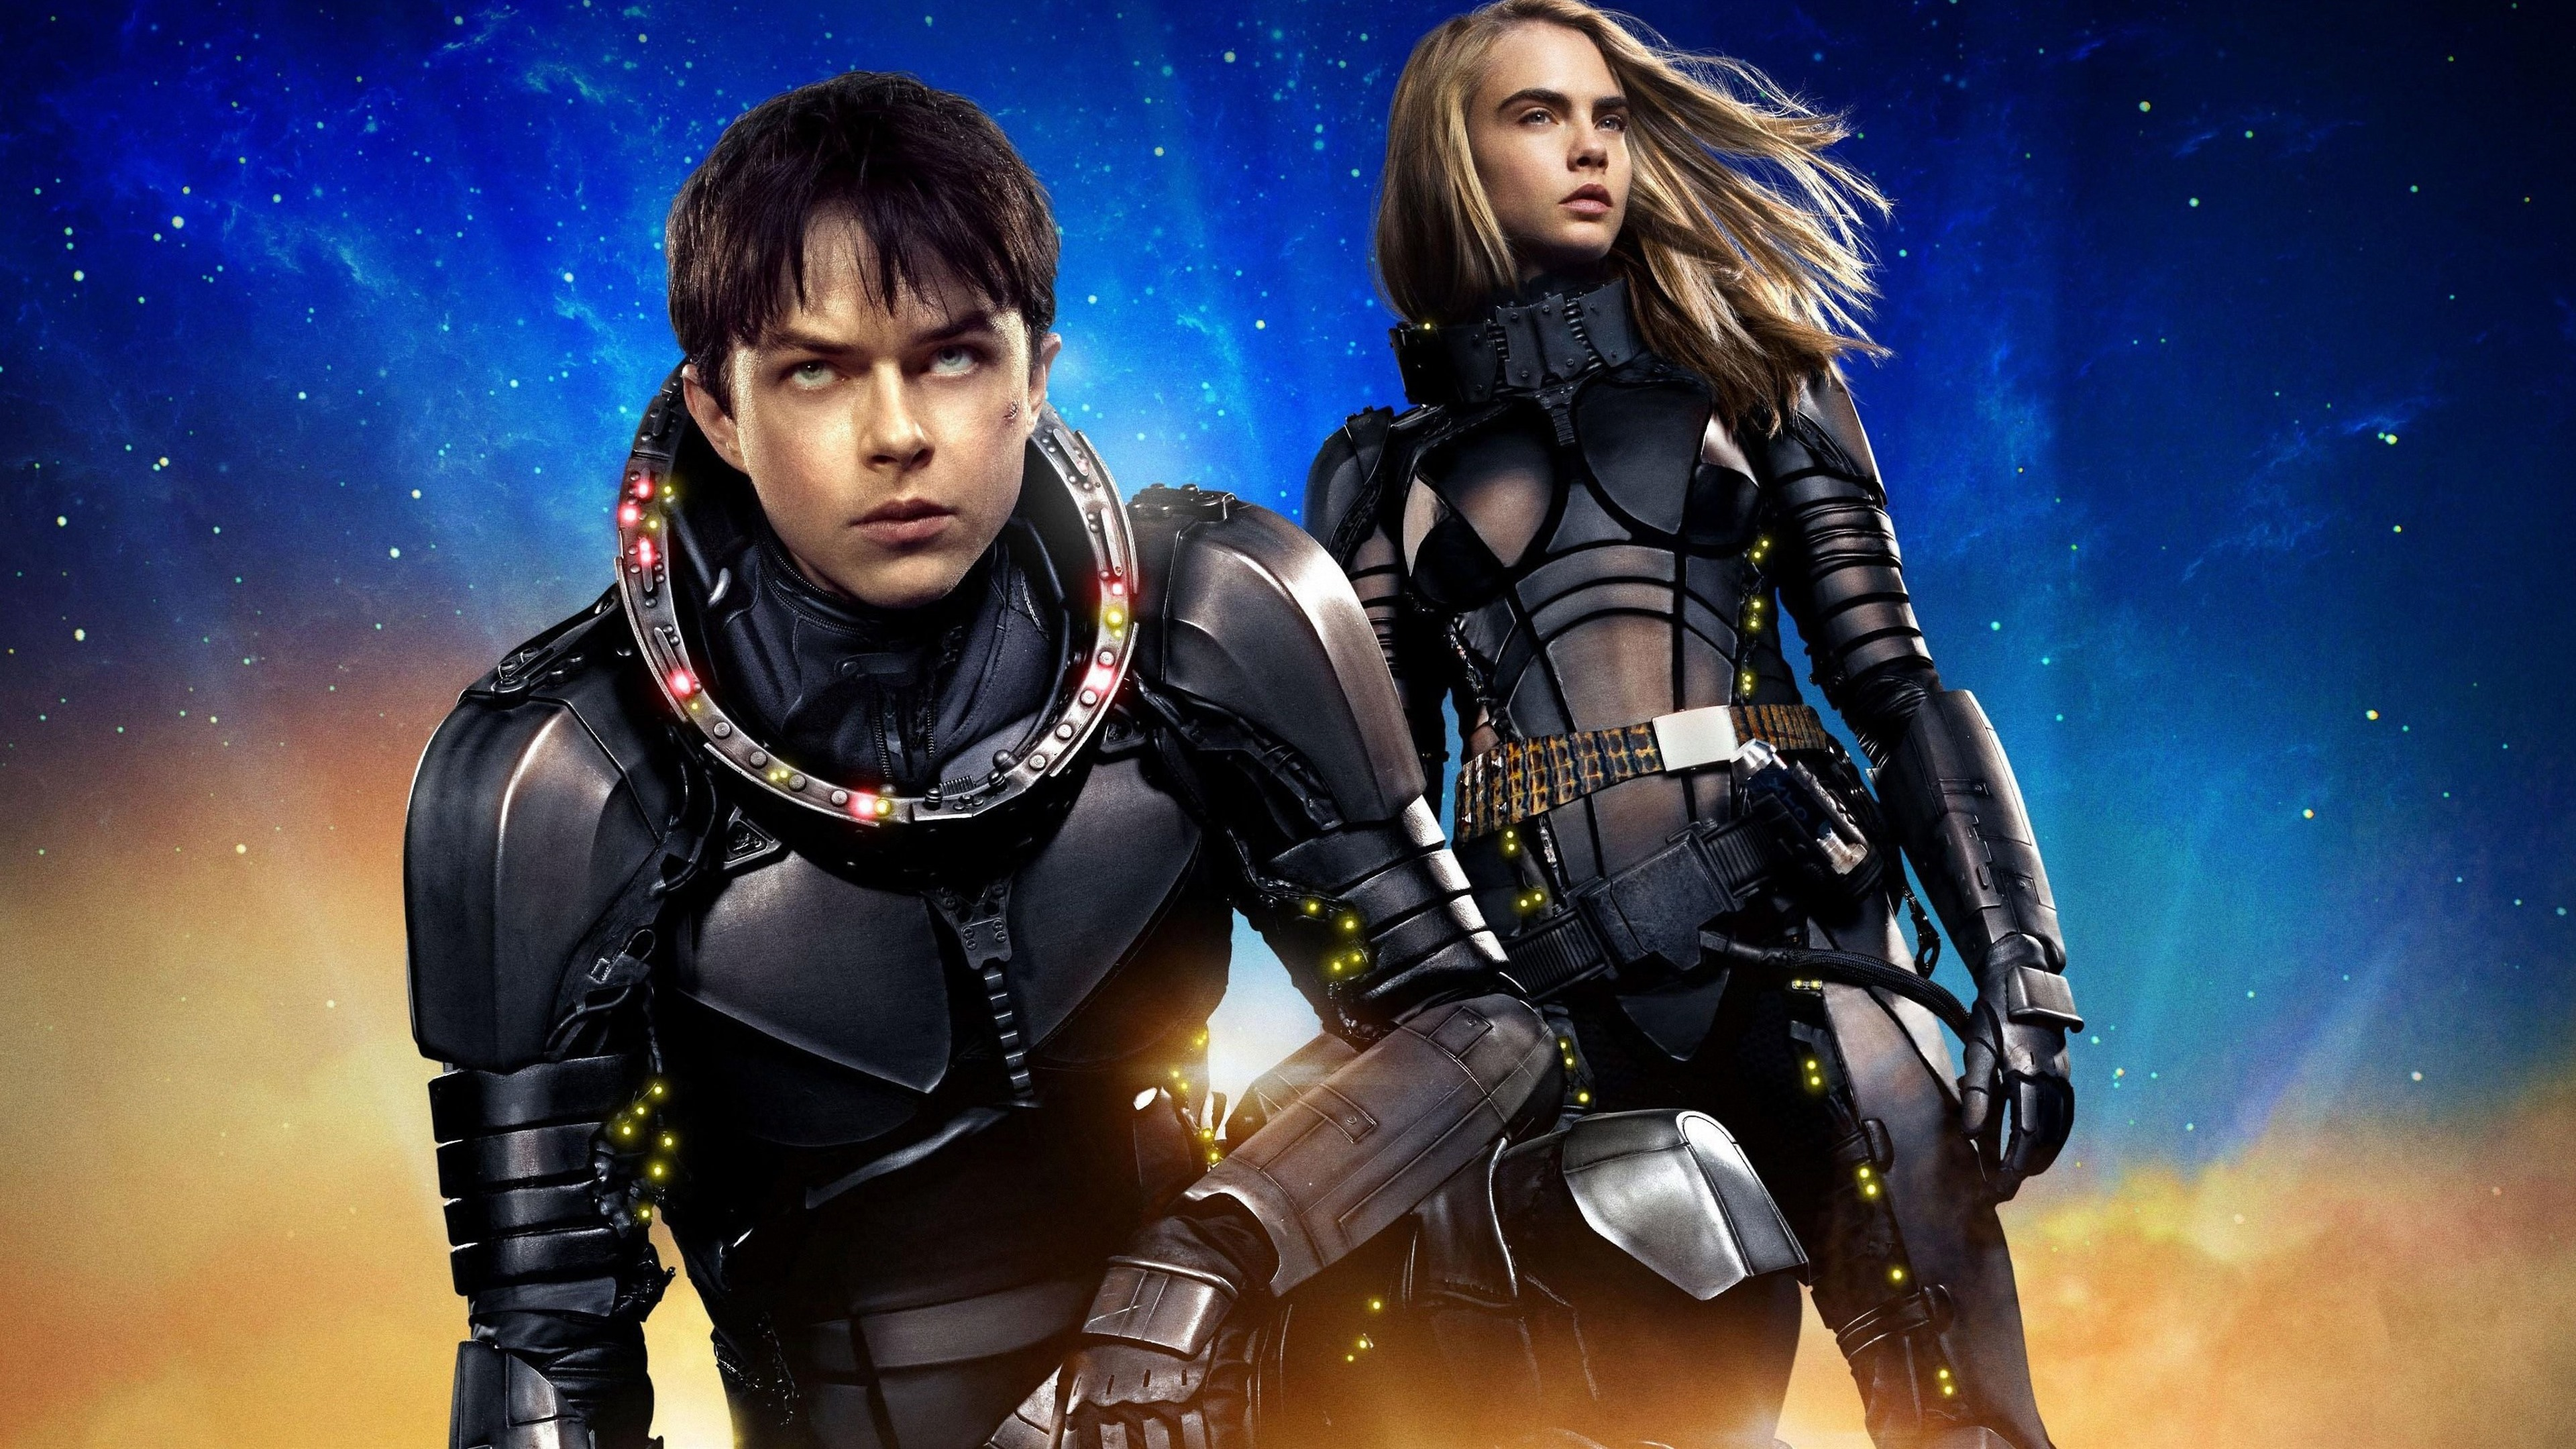 Wallpaper Valerian and the City of a Thousand Planets Science 3840x2160